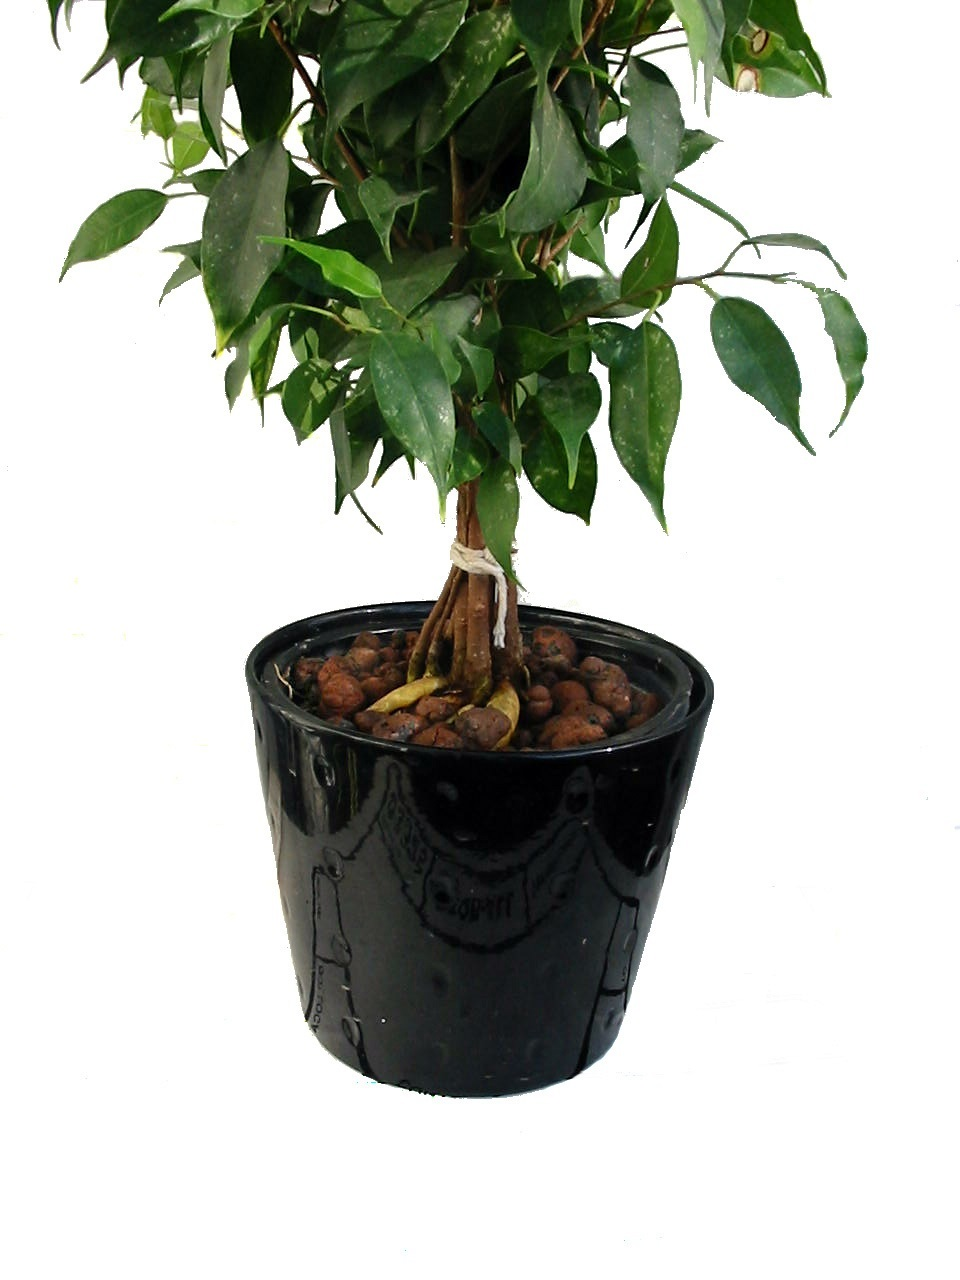 Ficus b 4in. leca close